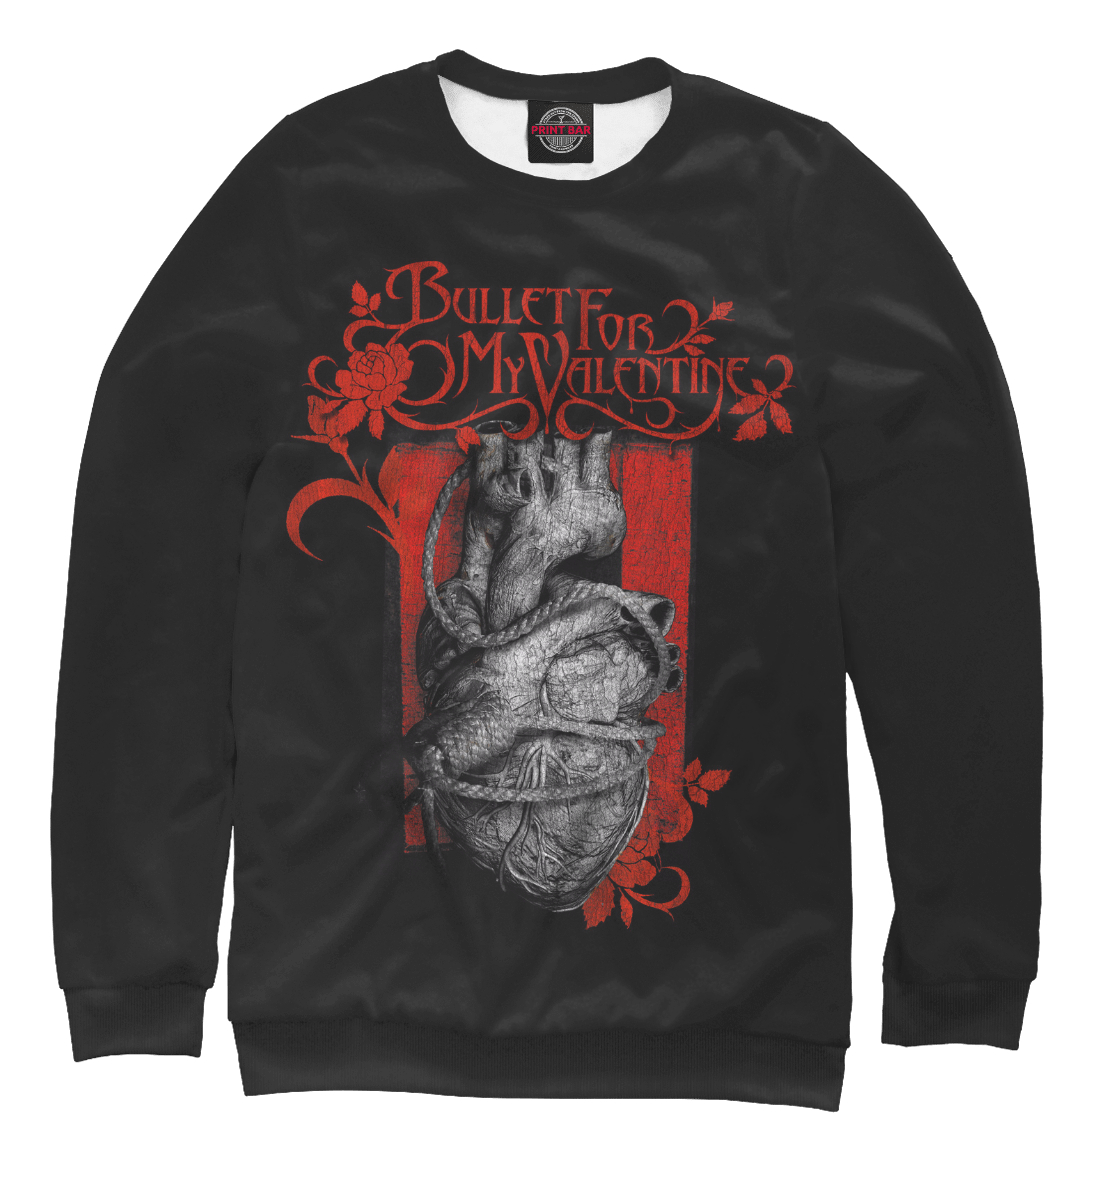 Купить Bullet For My Valentine, Printbar, Свитшоты, MZK-922147-swi-2